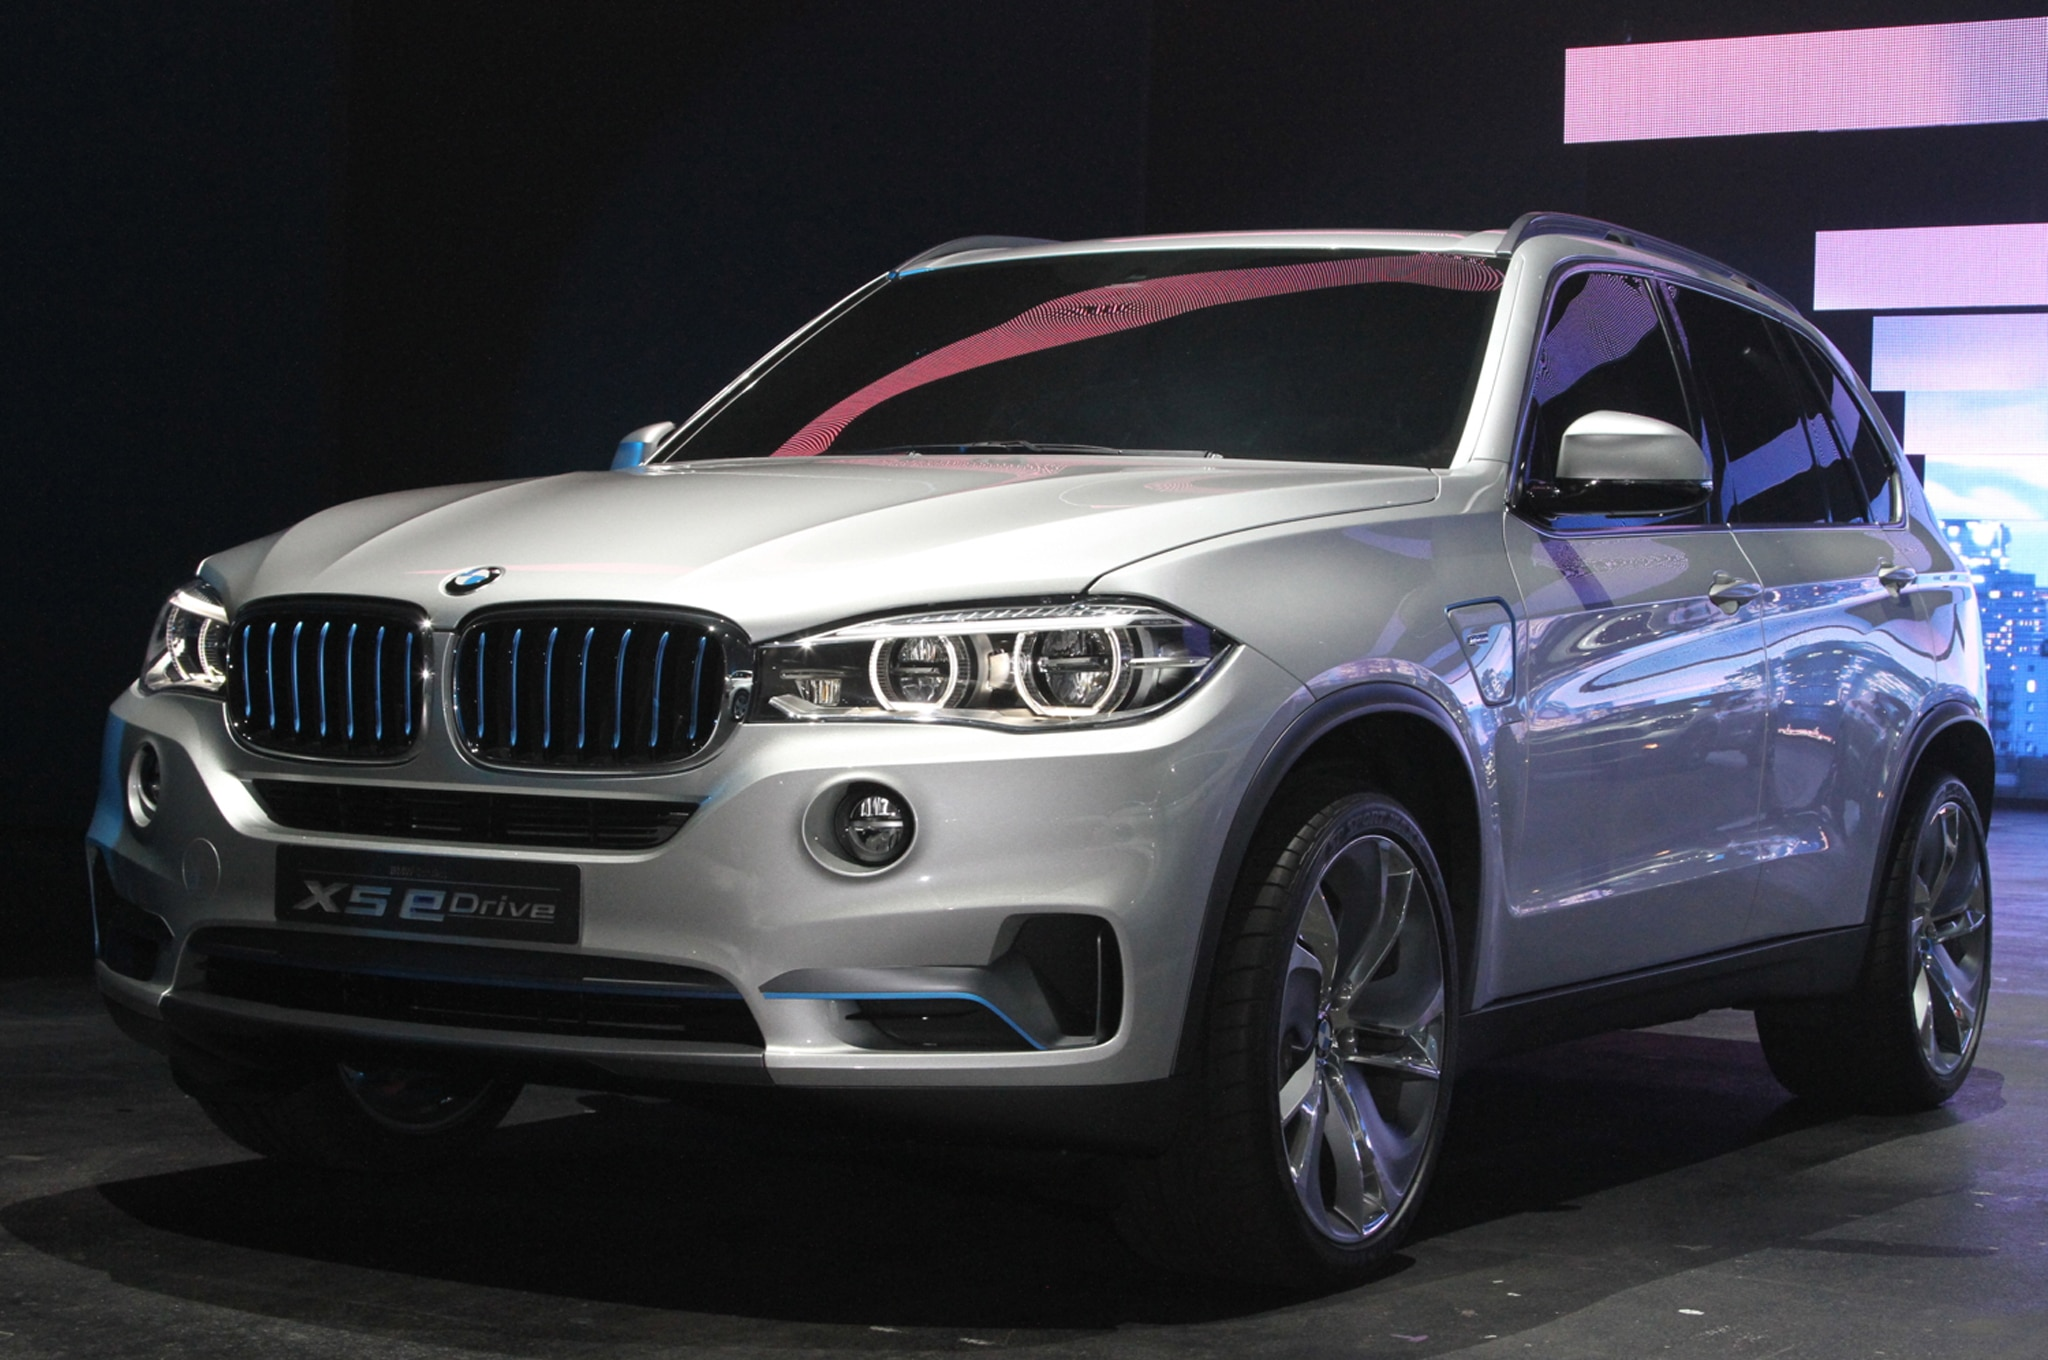 BMW Concept X5 EDrive Front Three Quarters1